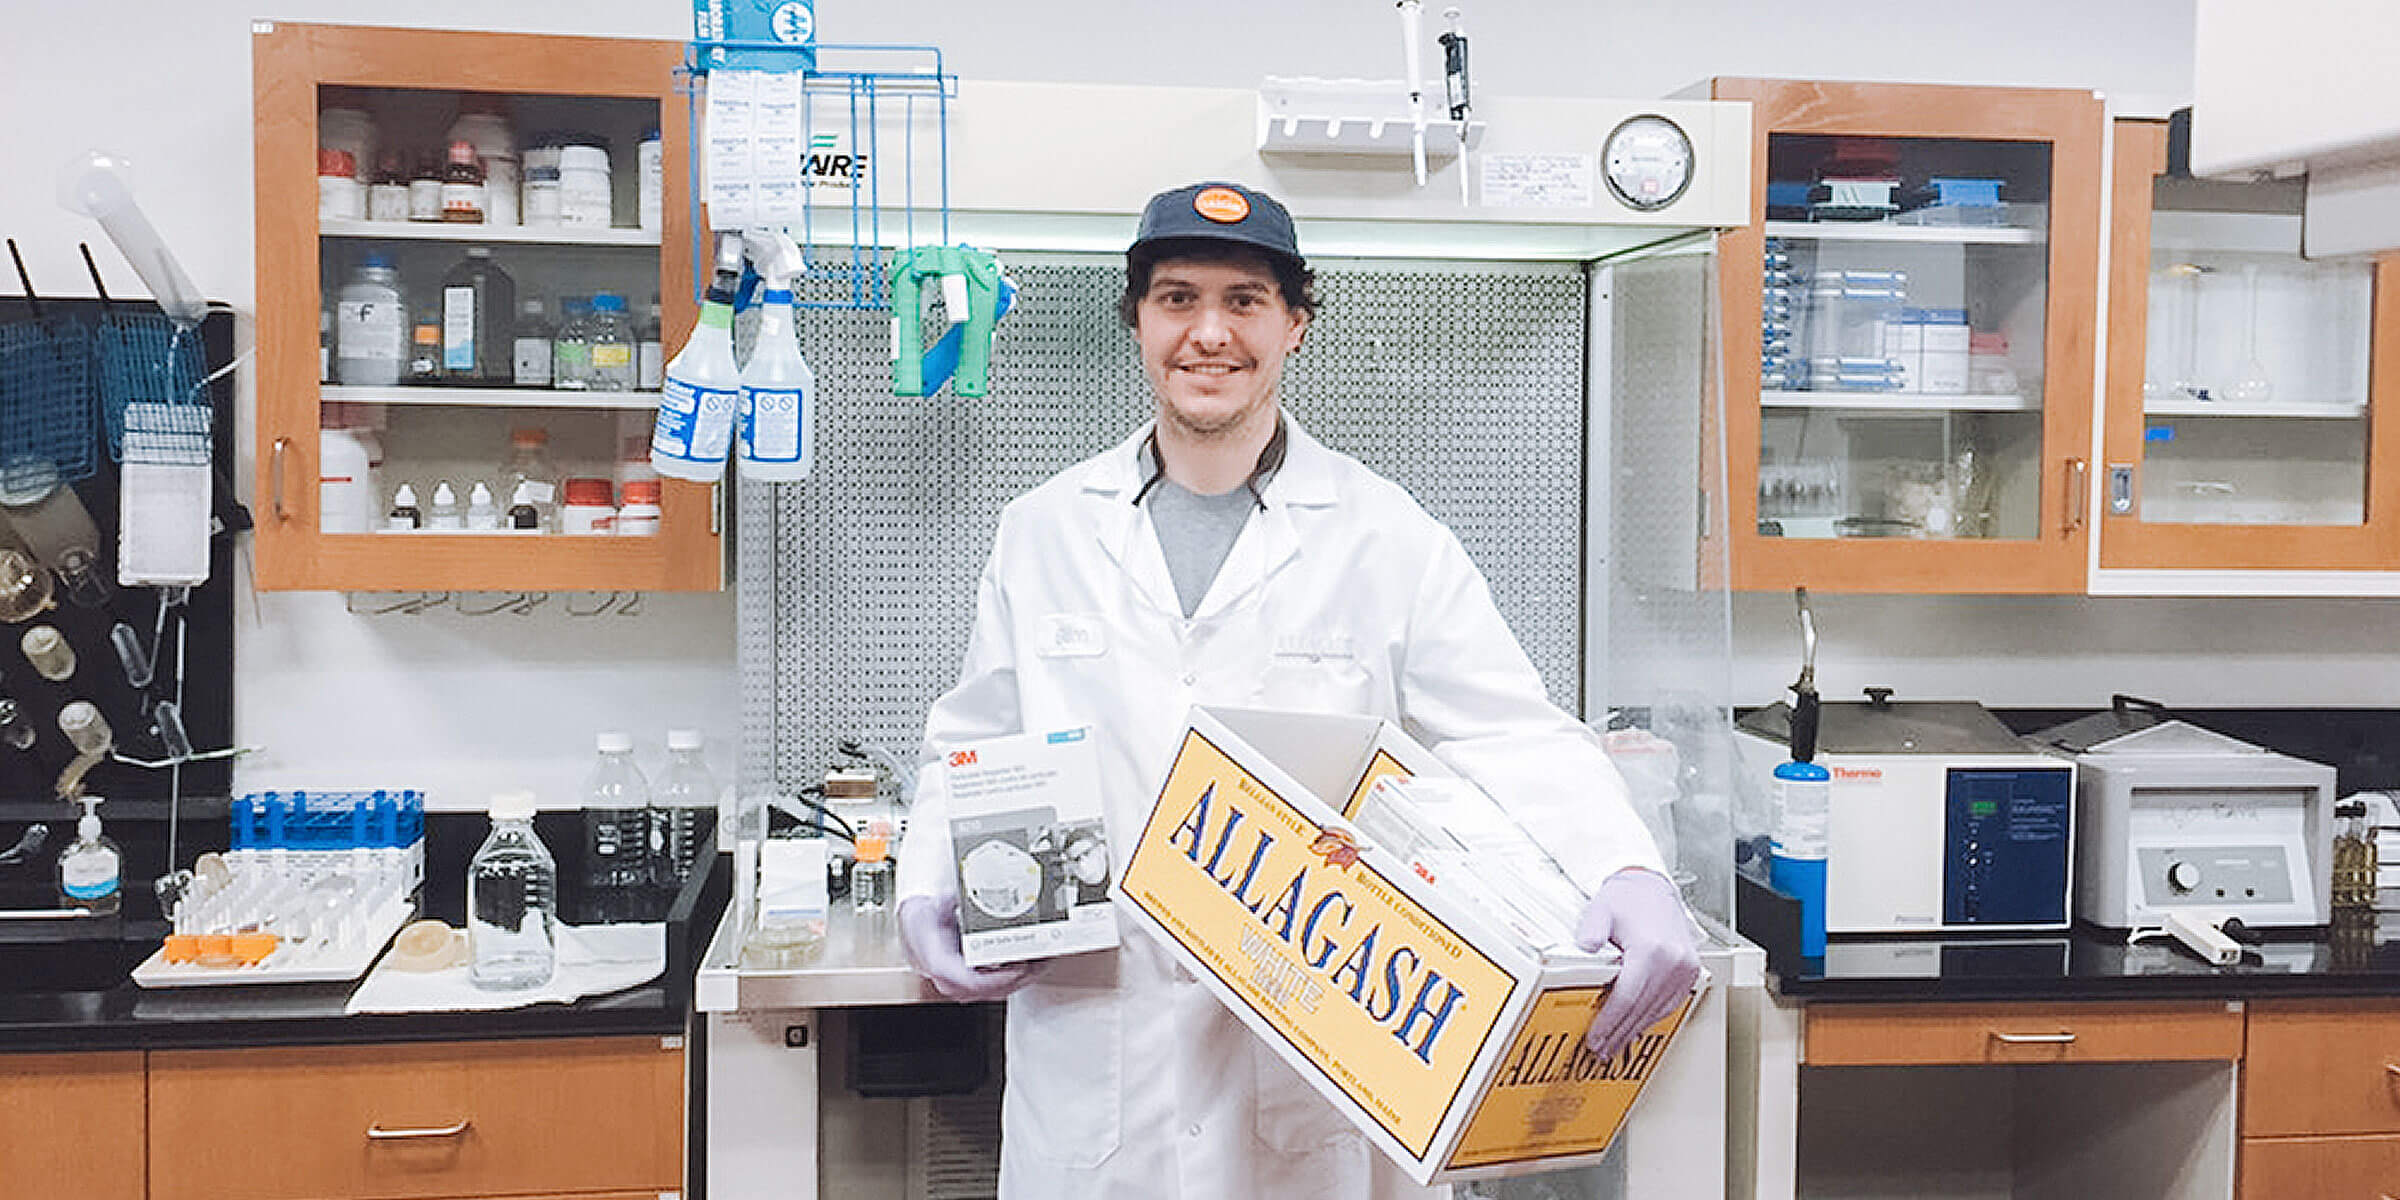 Allagash Brewing Company's staff discovered extra safety masks, which the brewery donated to the Barbara Bush Children's Hospital at Maine Medical Center.